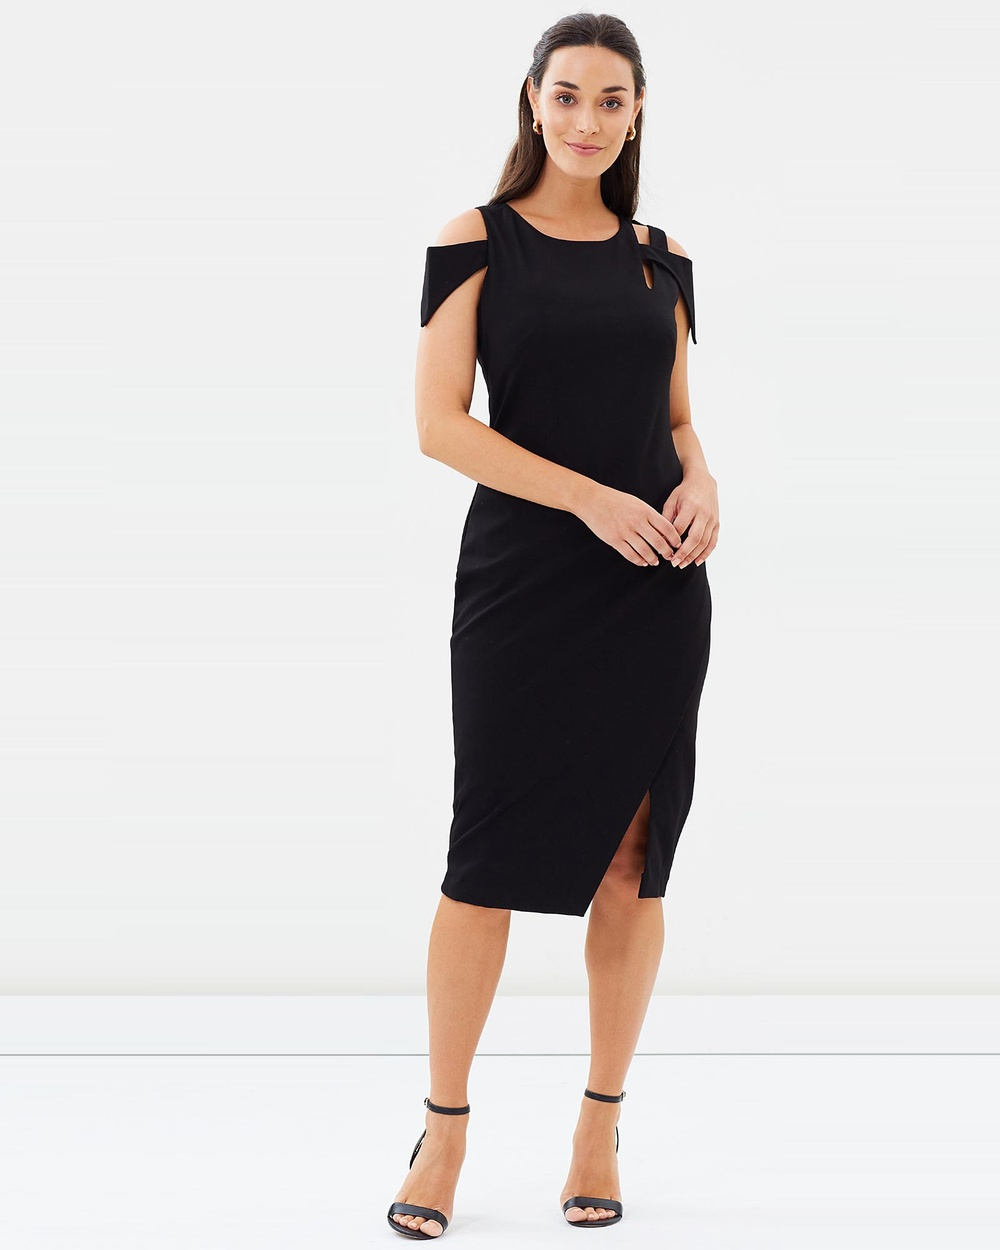 Pink Ruby Sabine Cut Out Dress Dresses Black Sabine Cut-Out Dress